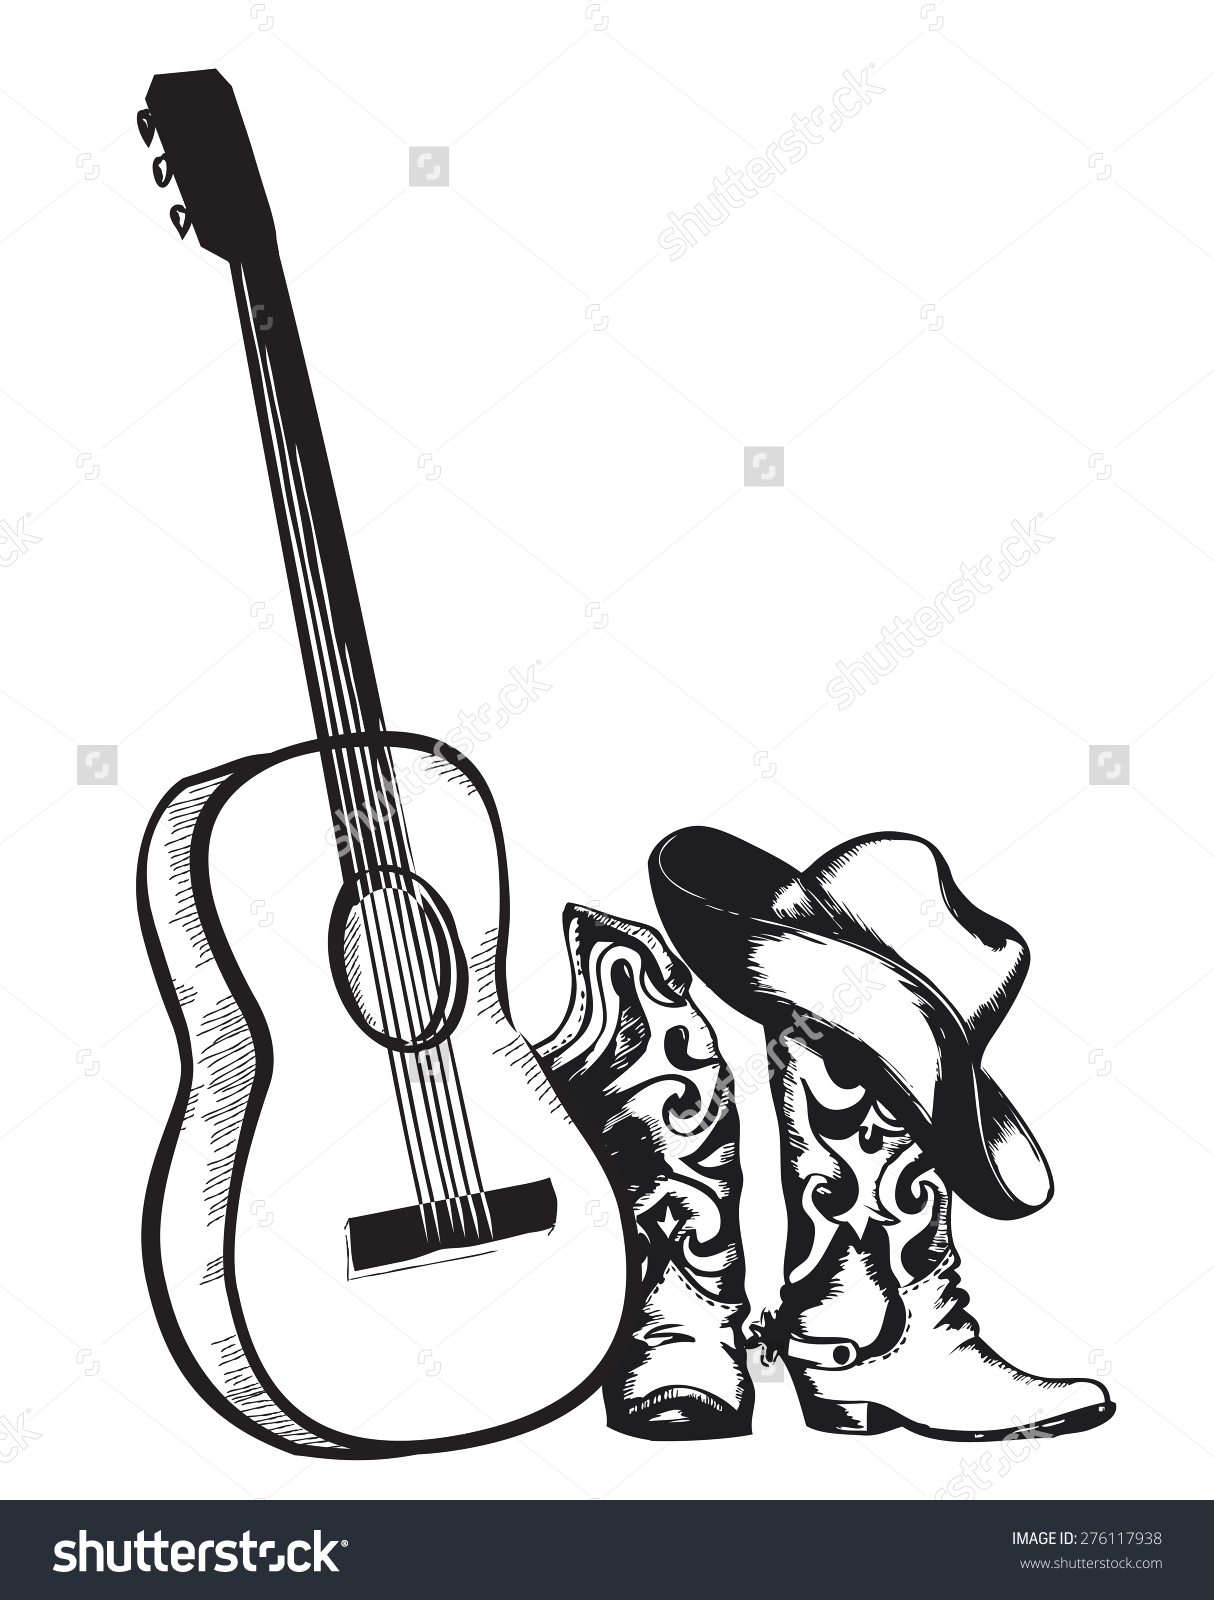 Country music clipart clipart black and white library 80+ Country Music Clipart   ClipartLook clipart black and white library